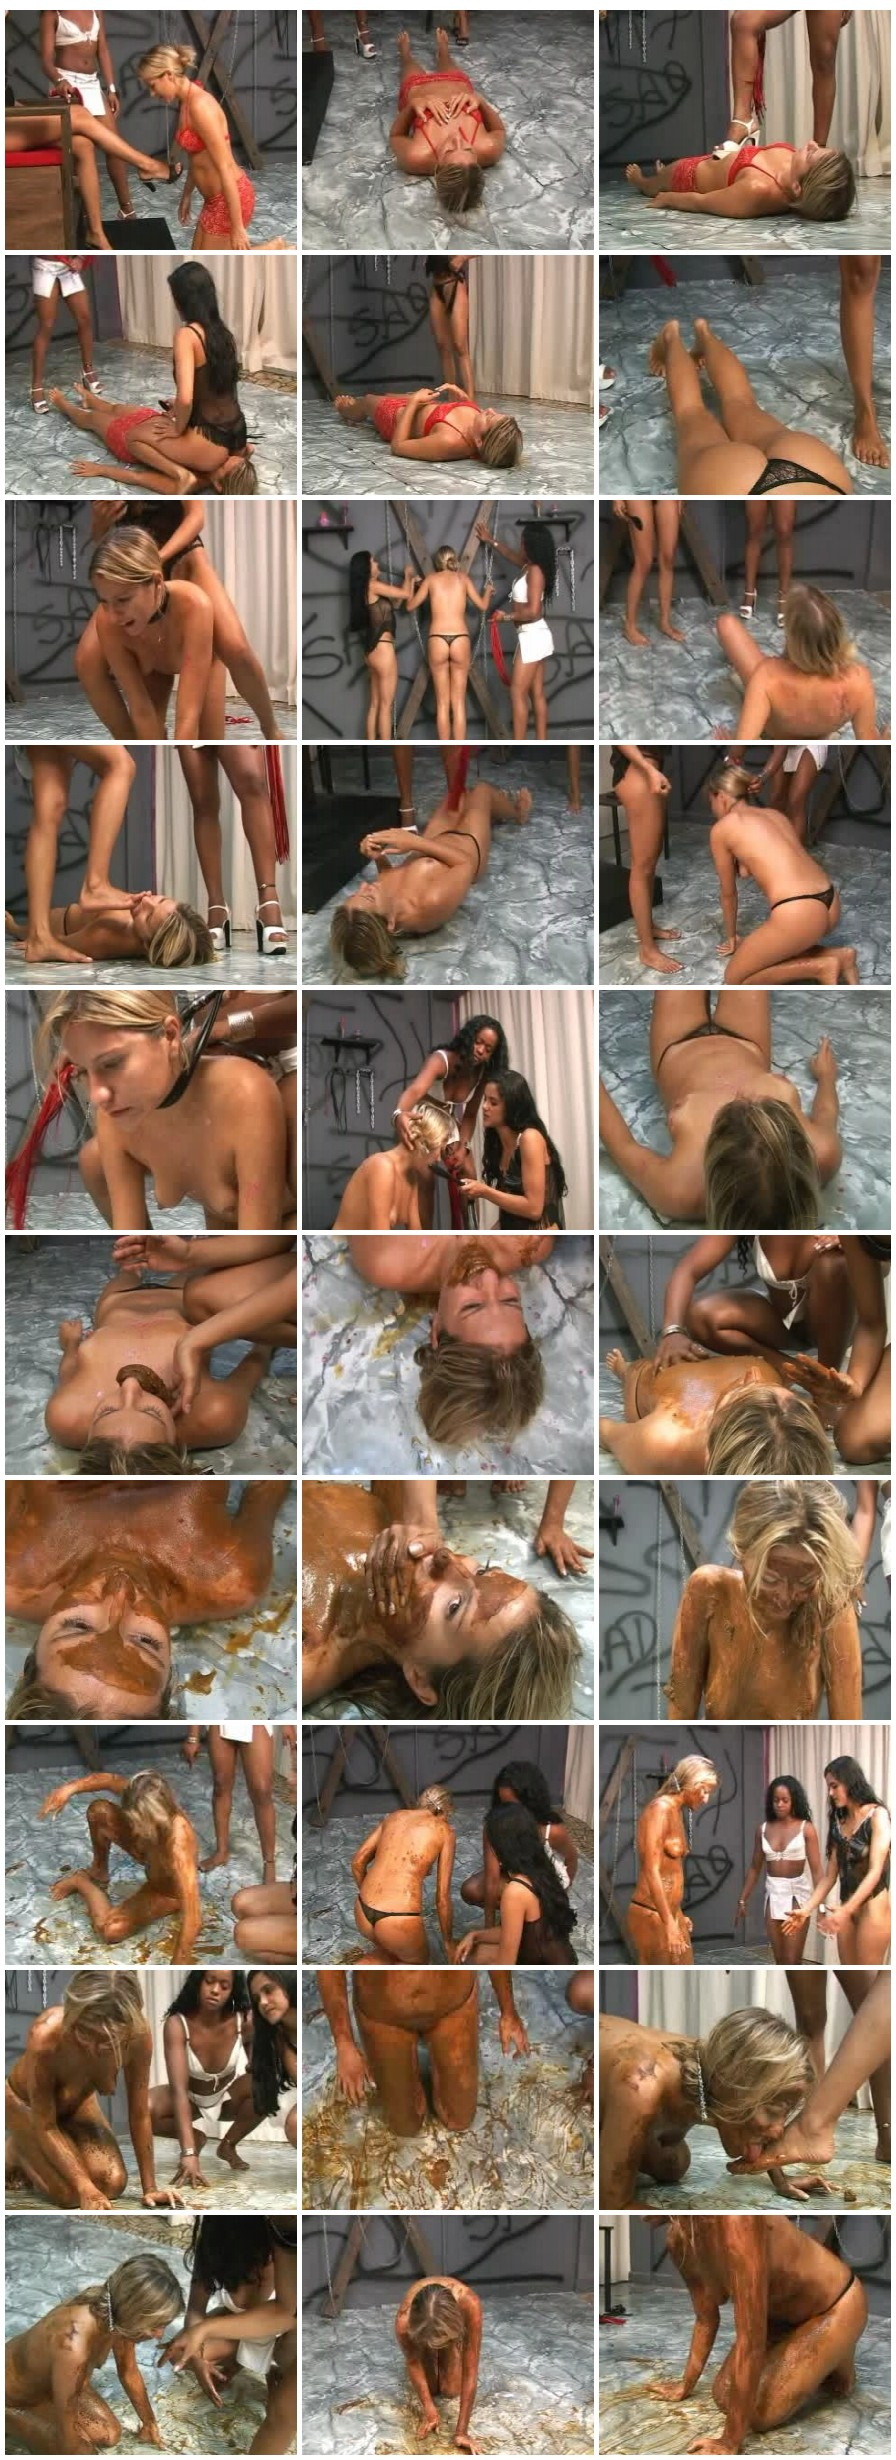 Sd-058 slave s lunch time [[Scat Lesbians, shit, defecation, pissing, Smearing,Lick ass, Facesitting, Fisting, Domination, Eat shit, Drink pee, Masturbation,Vomiting  ,scatting Domination]